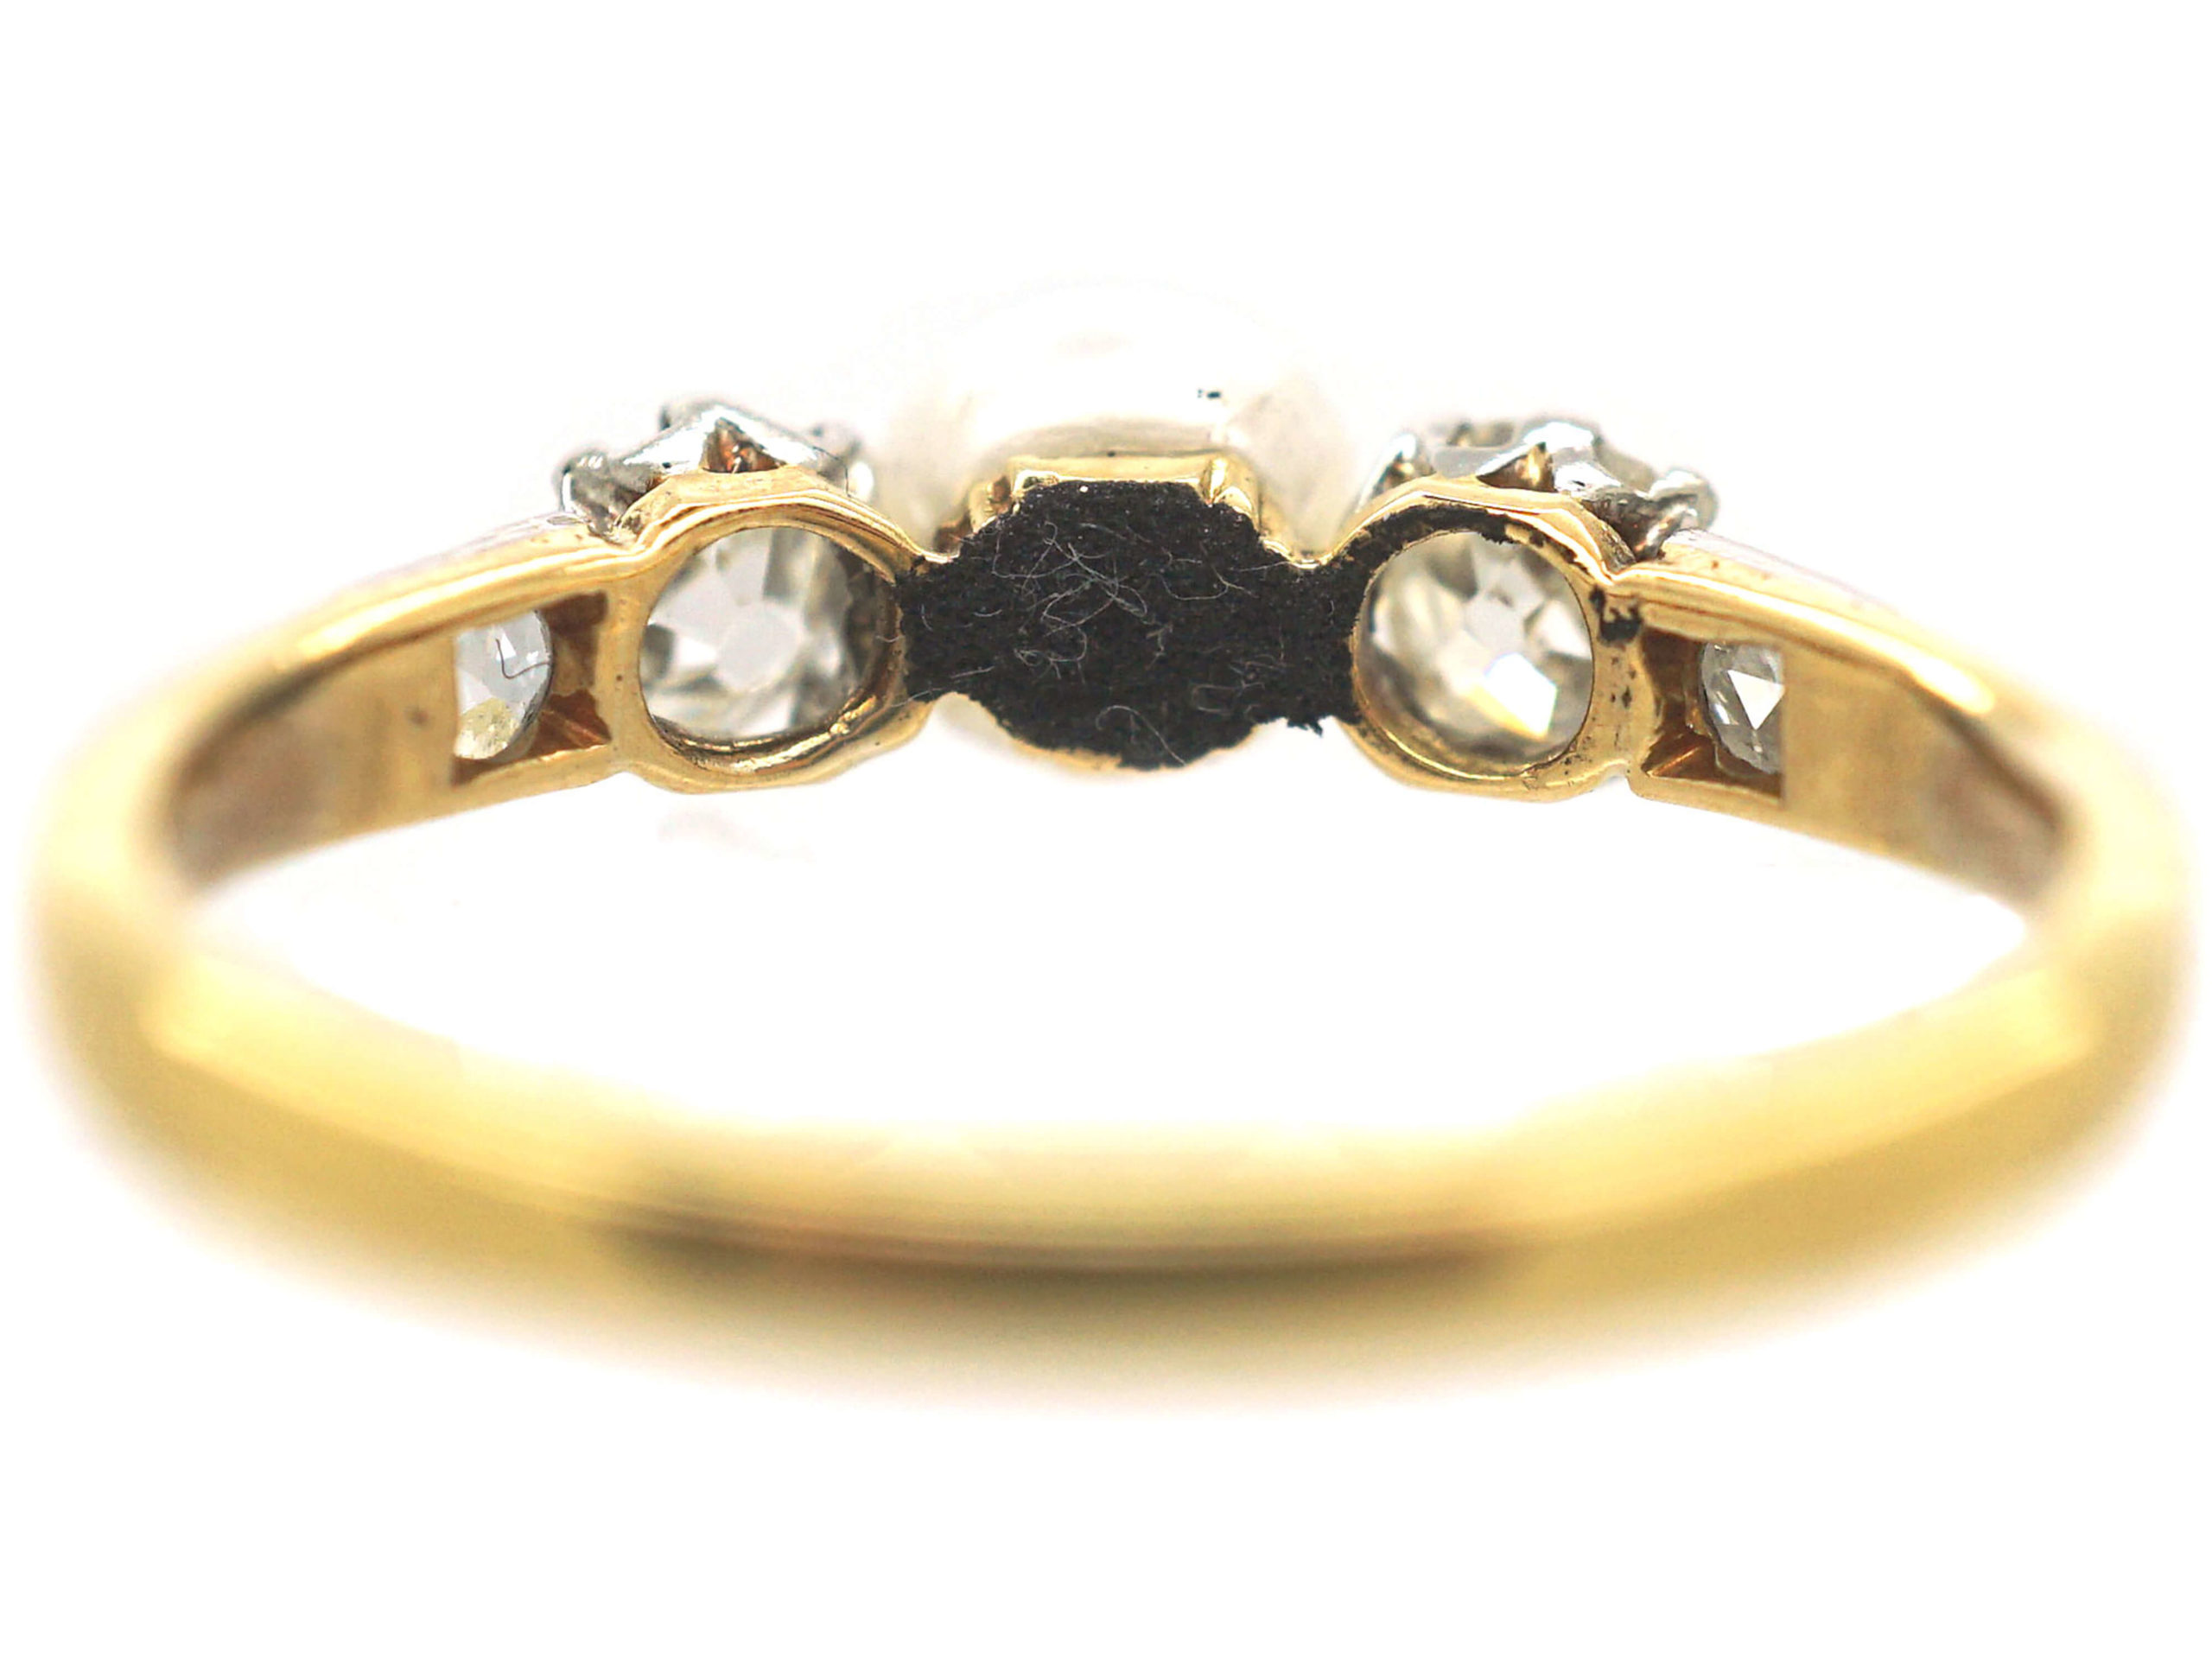 Edwardian 18ct Gold Old Mine Cut Diamond & Natural Bouton Pearl Ring